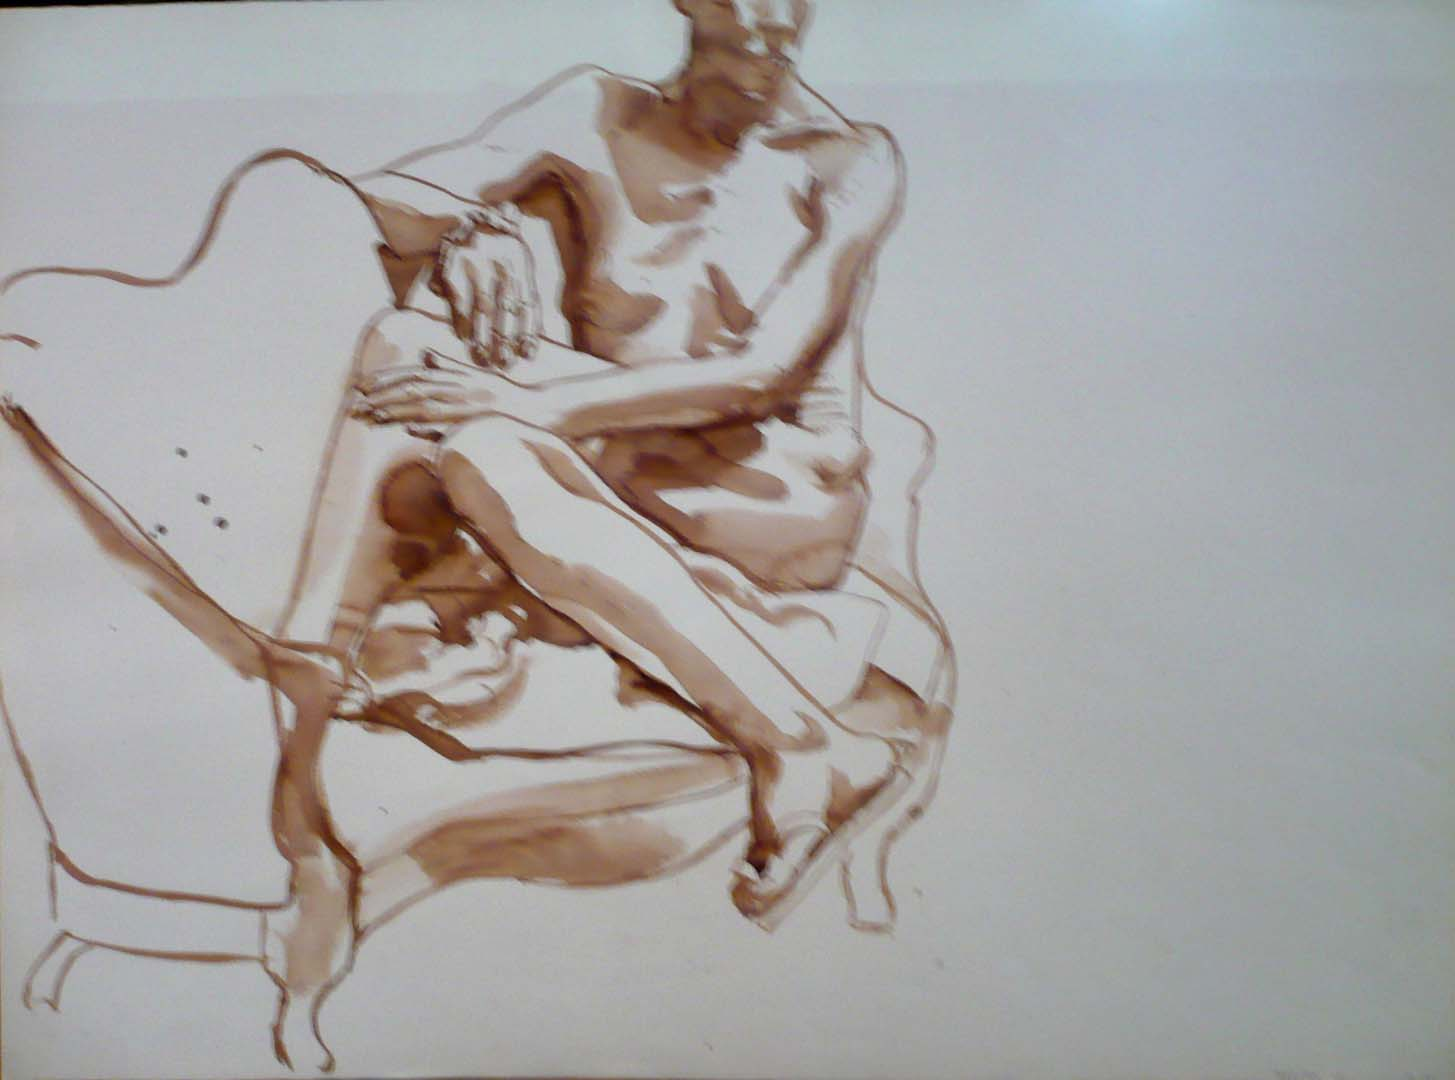 "1968 Female resting on Sofa with Legs Bent Sepia 22"" x 29.875"""